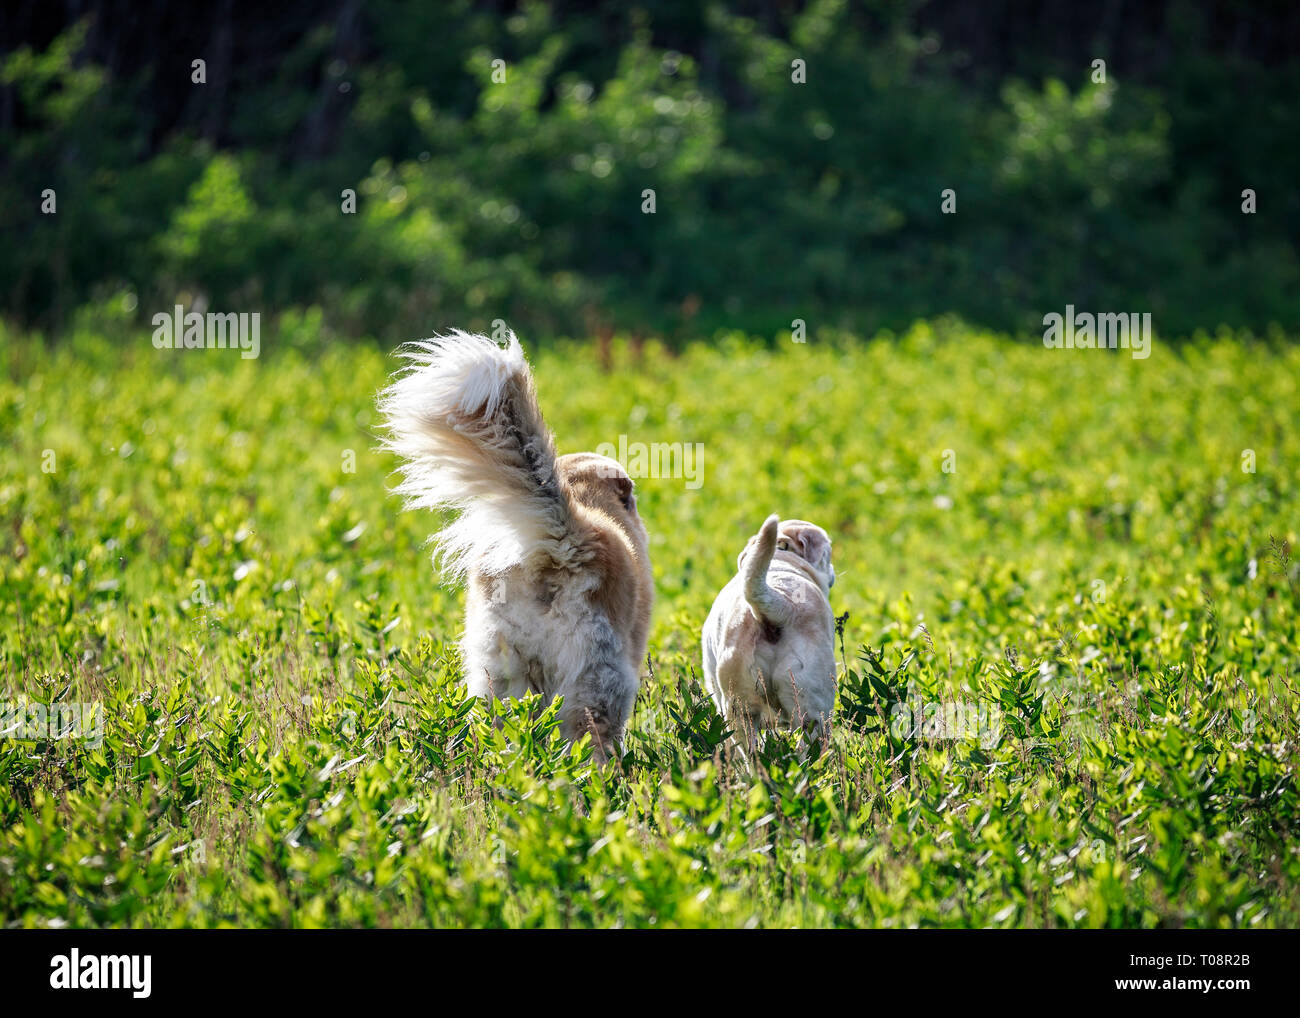 Rear view of two dogs exploring in an open field, Manitoba, Canada. - Stock Image